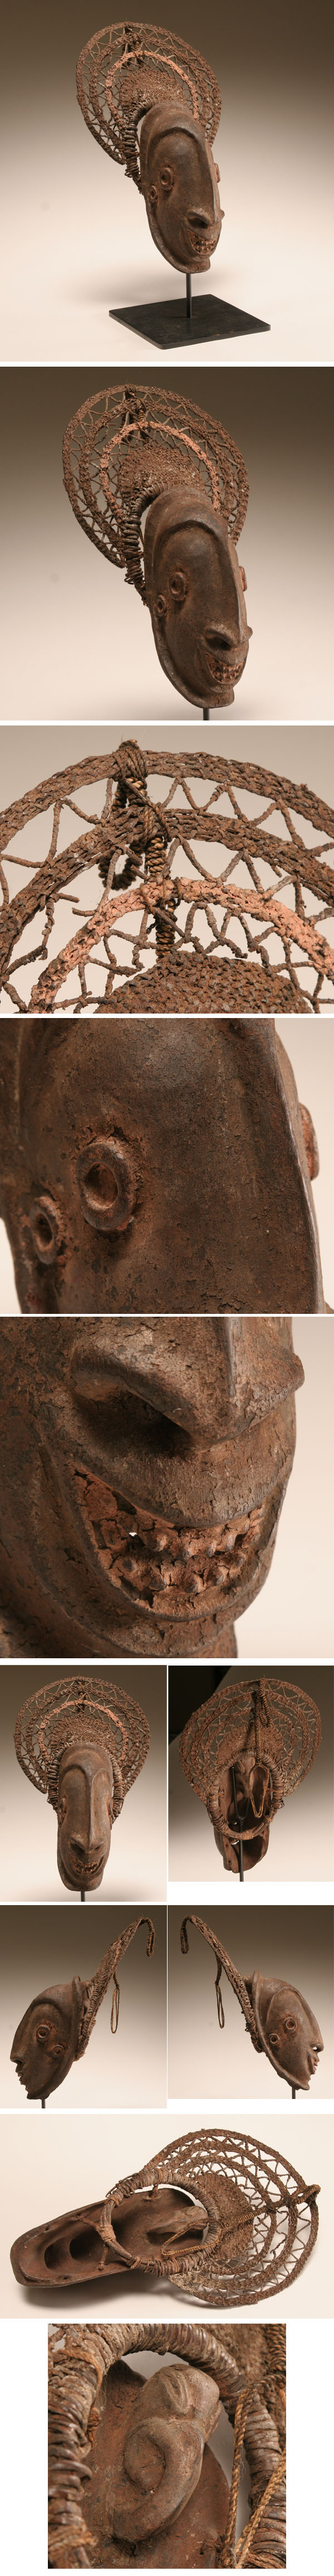 Oceanic Arapesh wooden ancestor spirit mask, Torricelli Mountains, New Guinea. | Antique Helper